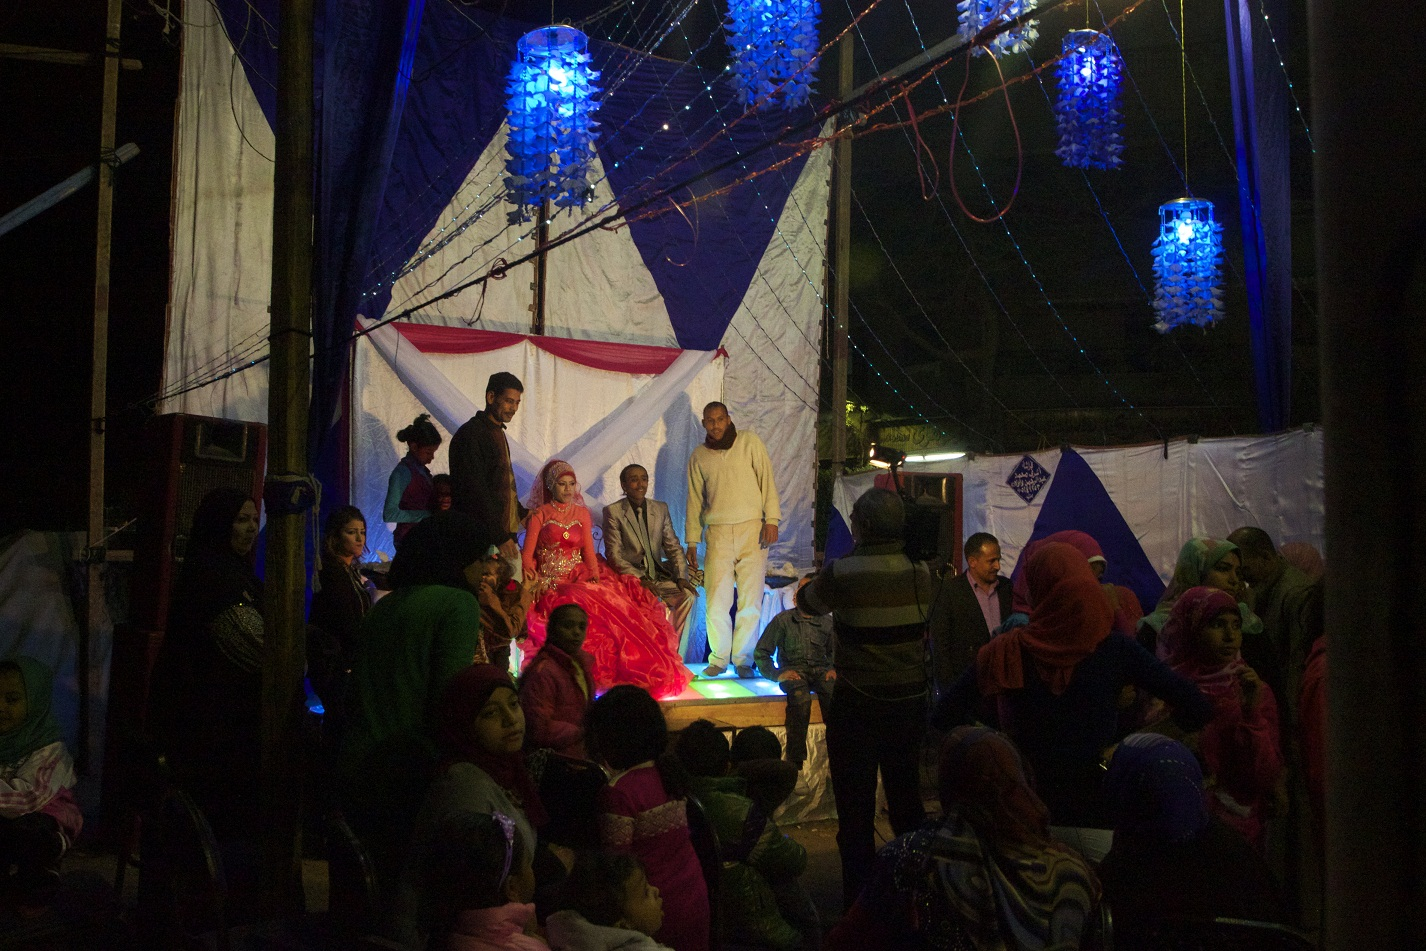 A wedding party in Maadi, Cairo Governorate (Photo by Elizabeth Stuart)